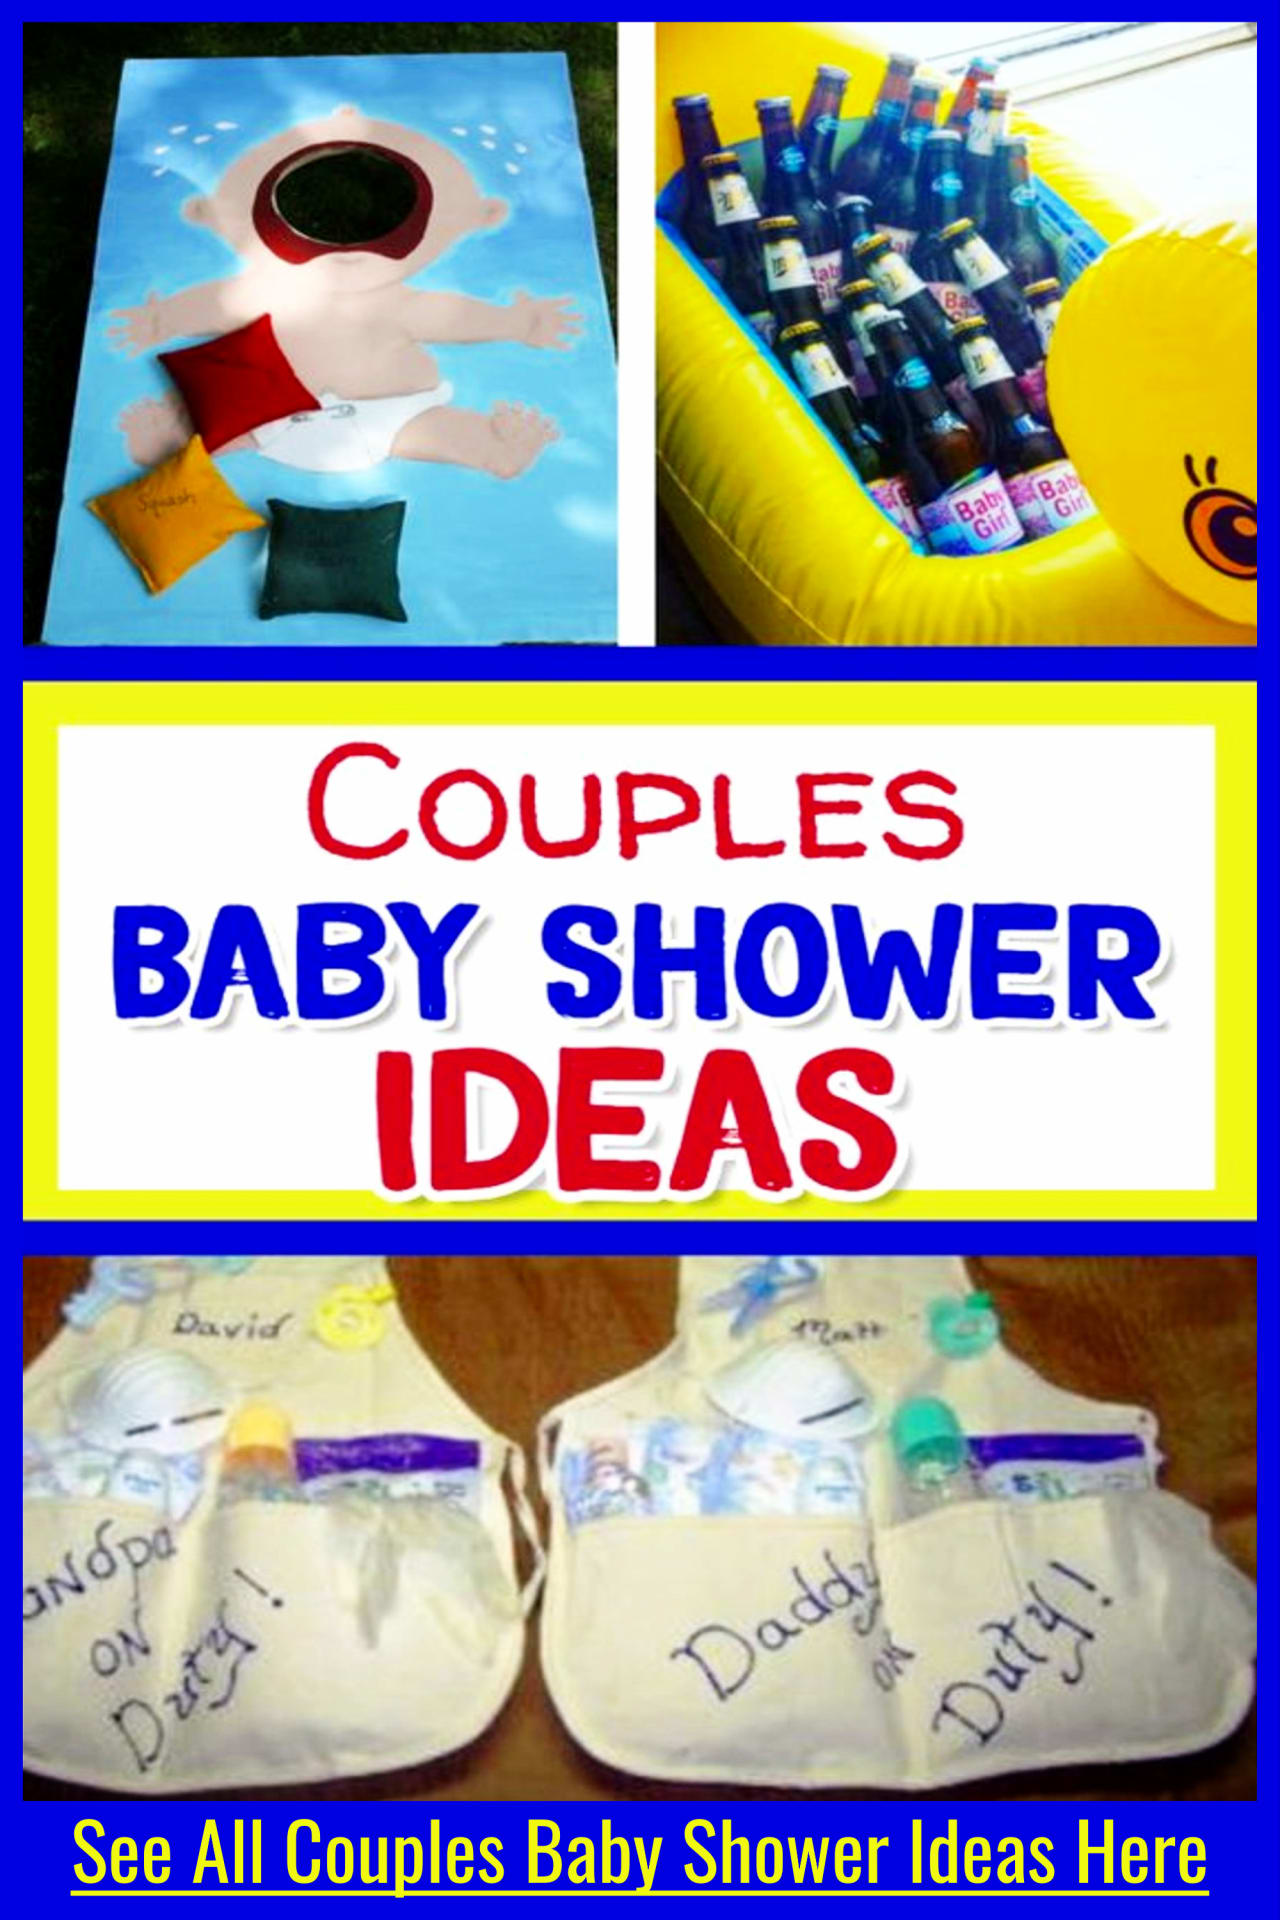 Couples baby shower ideas - baby shower gifts on a budget and cheap coed couples baby shower decorations, games, food ideas and more